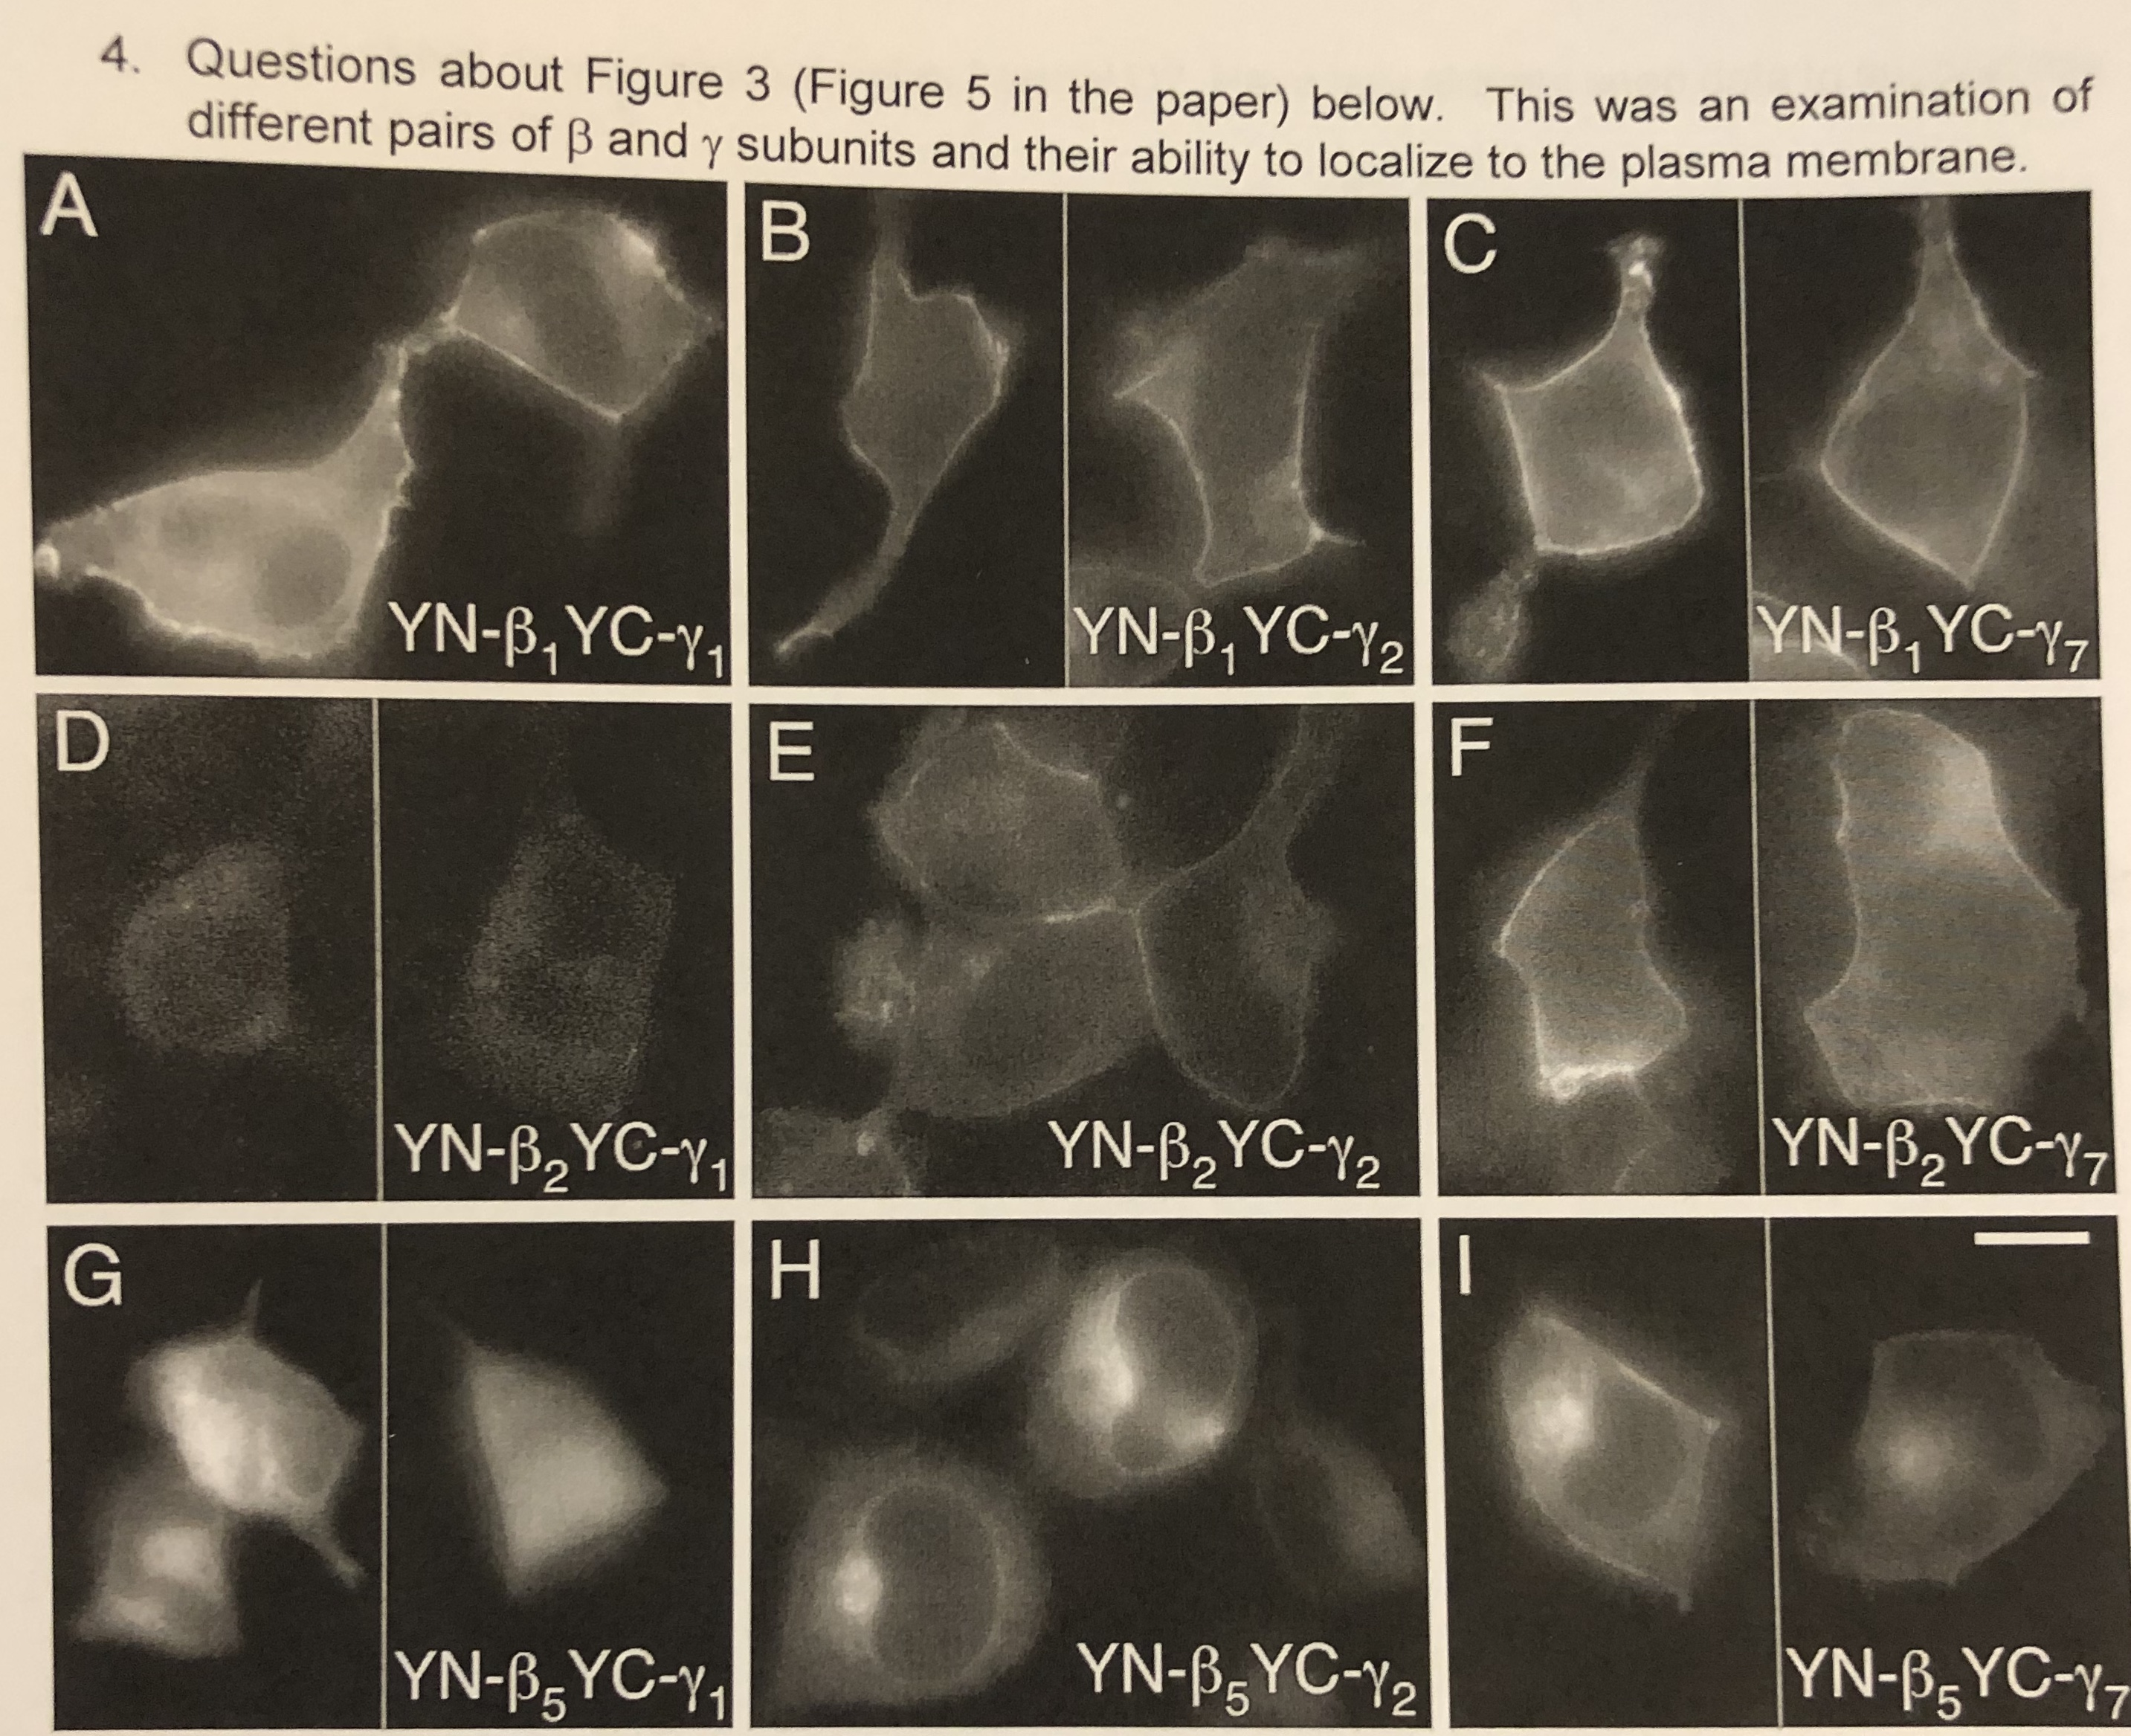 4. Questions about Figure 3 (Figure 5 in the paper) below. This was an examination of different pairs of B and y subunits and their ability to localize to the plasma membrane. A В C YN-B,YC-Y1 YN-B YC-Y7 YN-B,YC-Y2 YN-B2YC-Y7 YN-B2YC-Y2 YN-B,YC-Y 2 YN-BYC-Y7 YN-BYC-Y2 YN-BSYC-y LL I